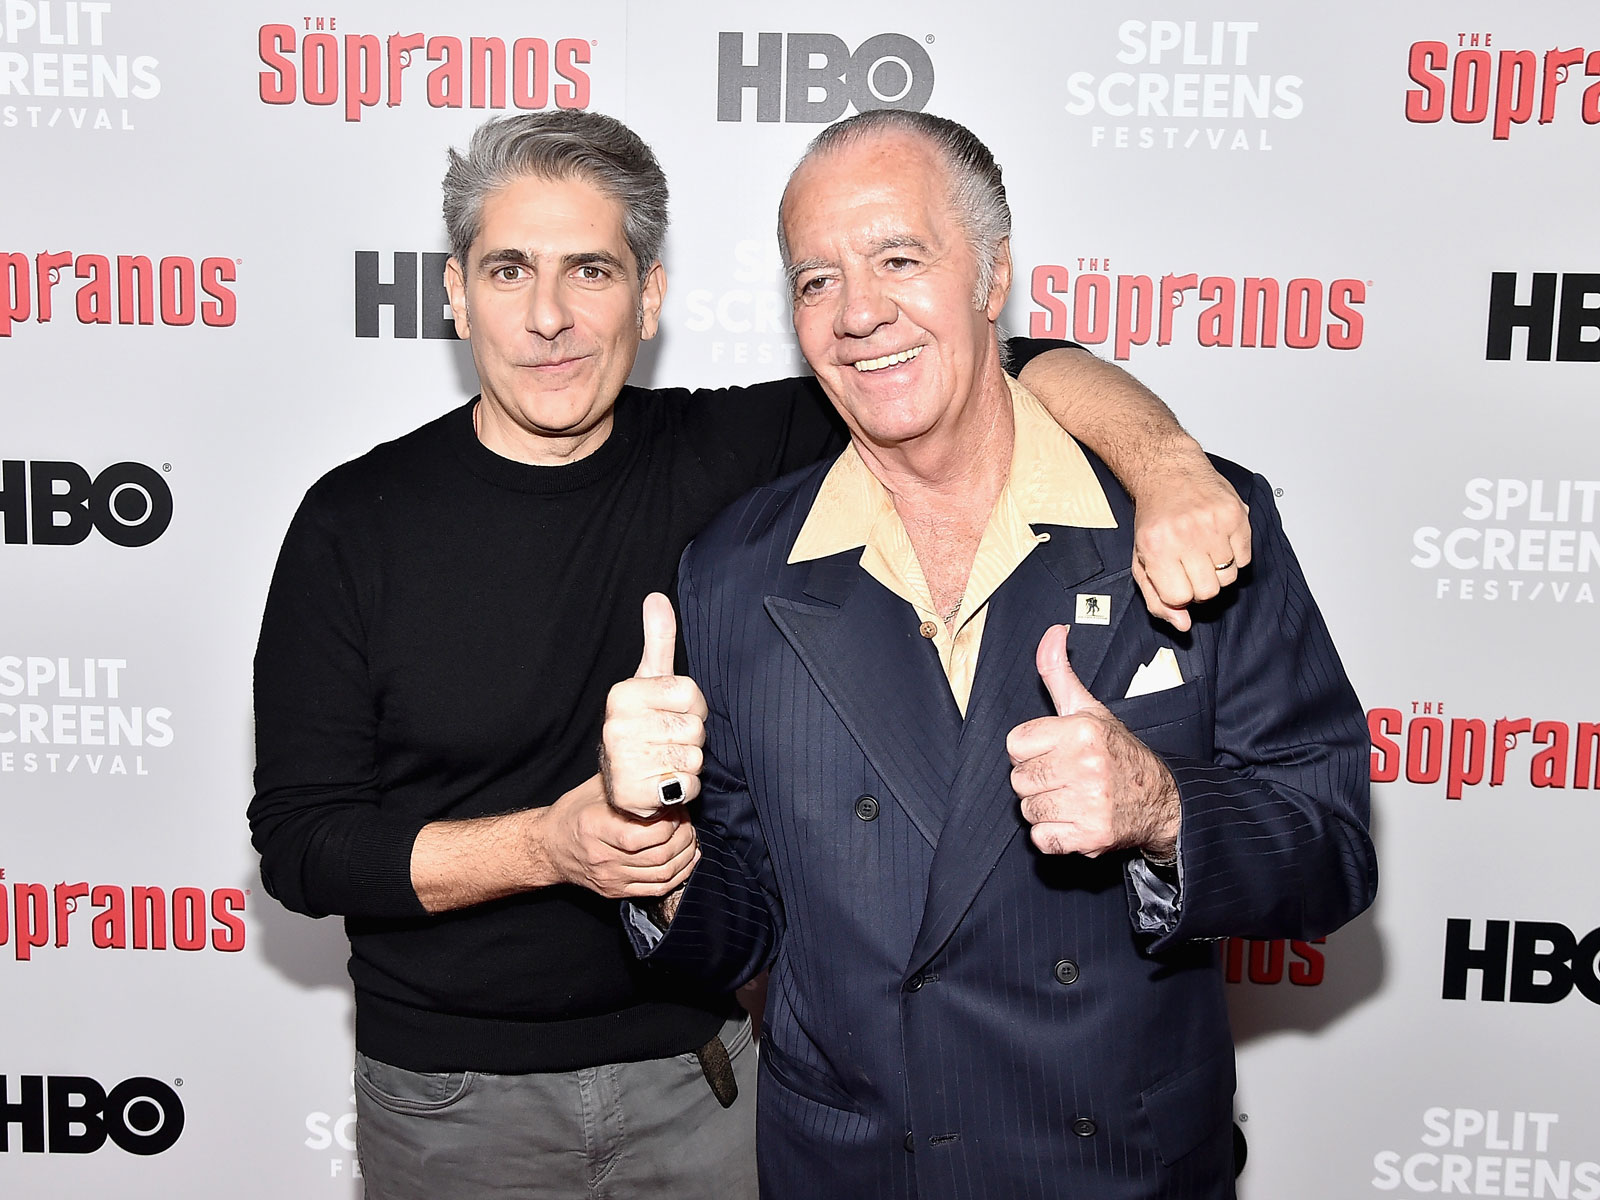 New Jersey to Host a 'Sopranos'-Themed Convention with Lots of Italian Food